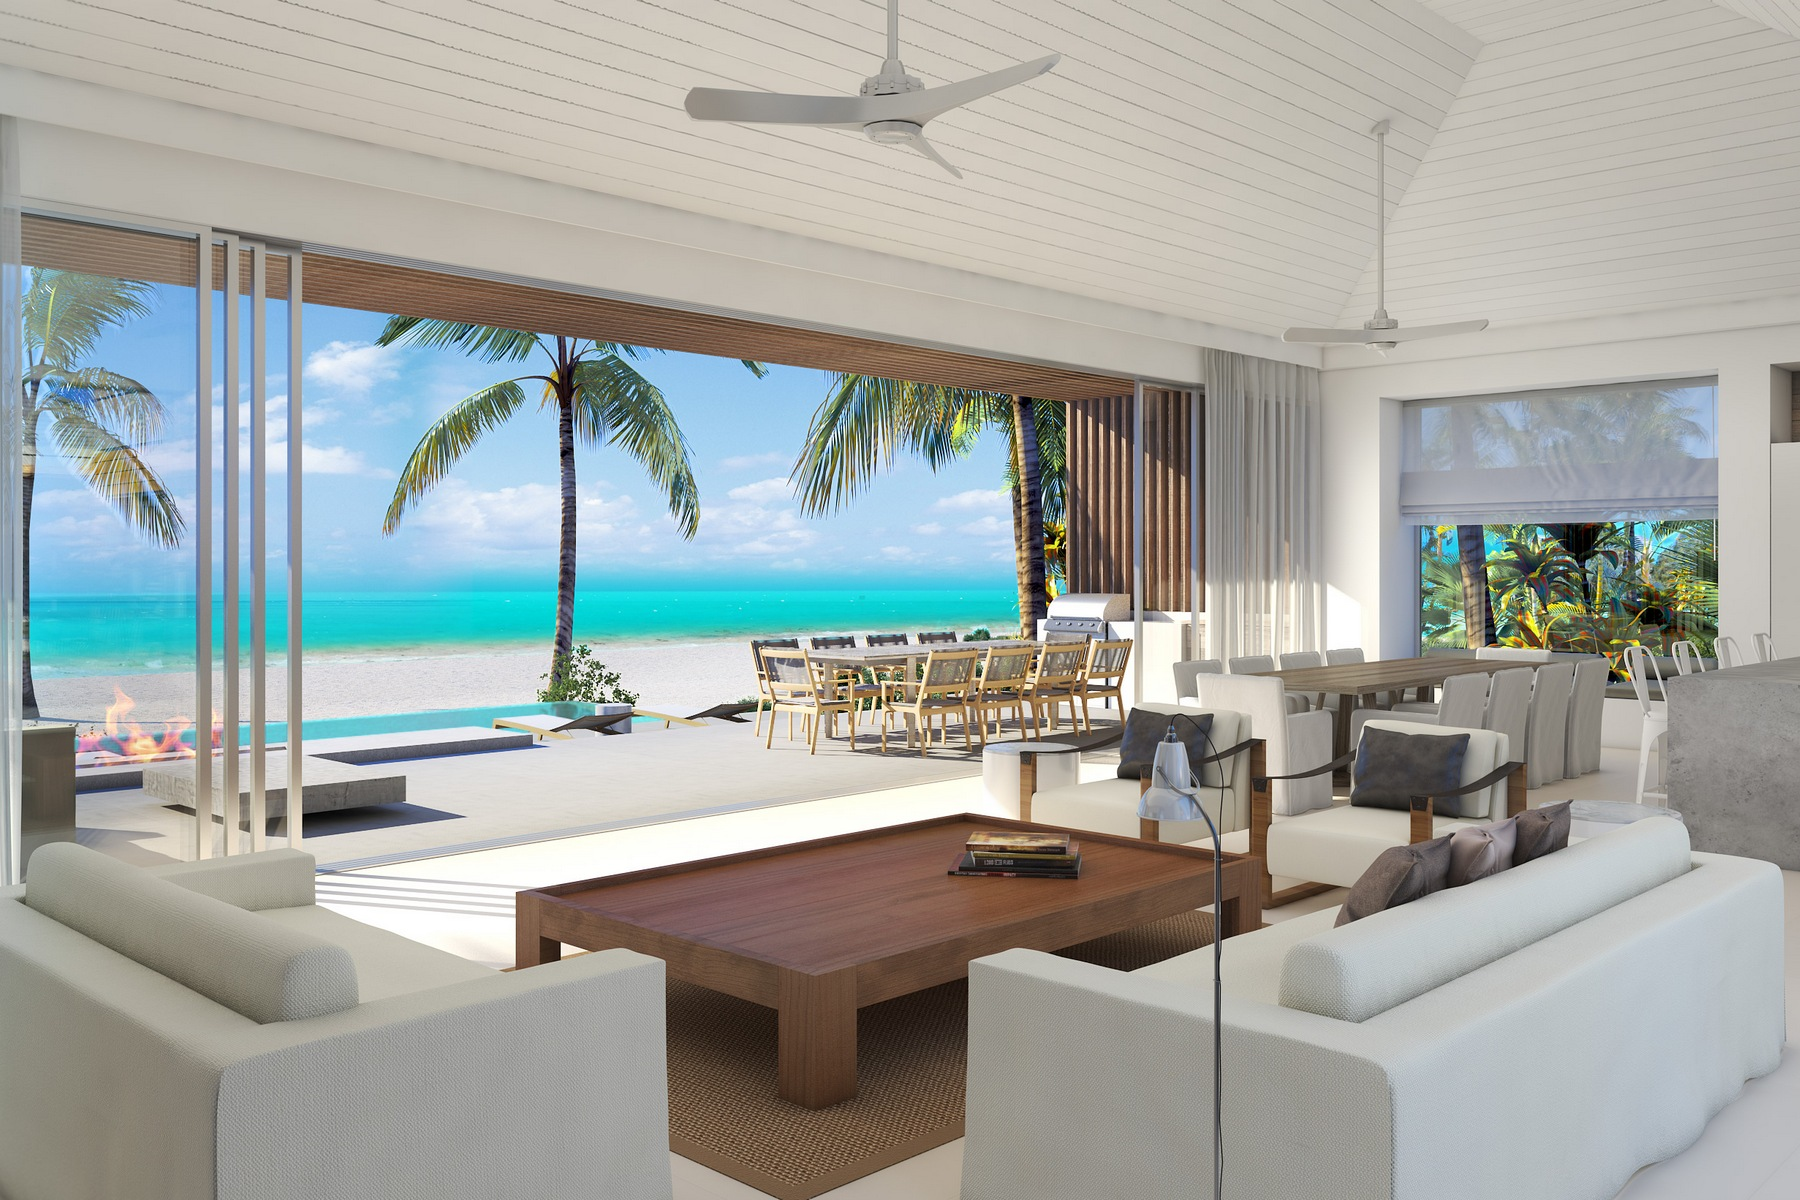 Villa per Vendita alle ore BEACH ENCLAVE LONG BAY - Design One 5B Beachfront Long Bay, Providenciales, TCI Turks E Caicos